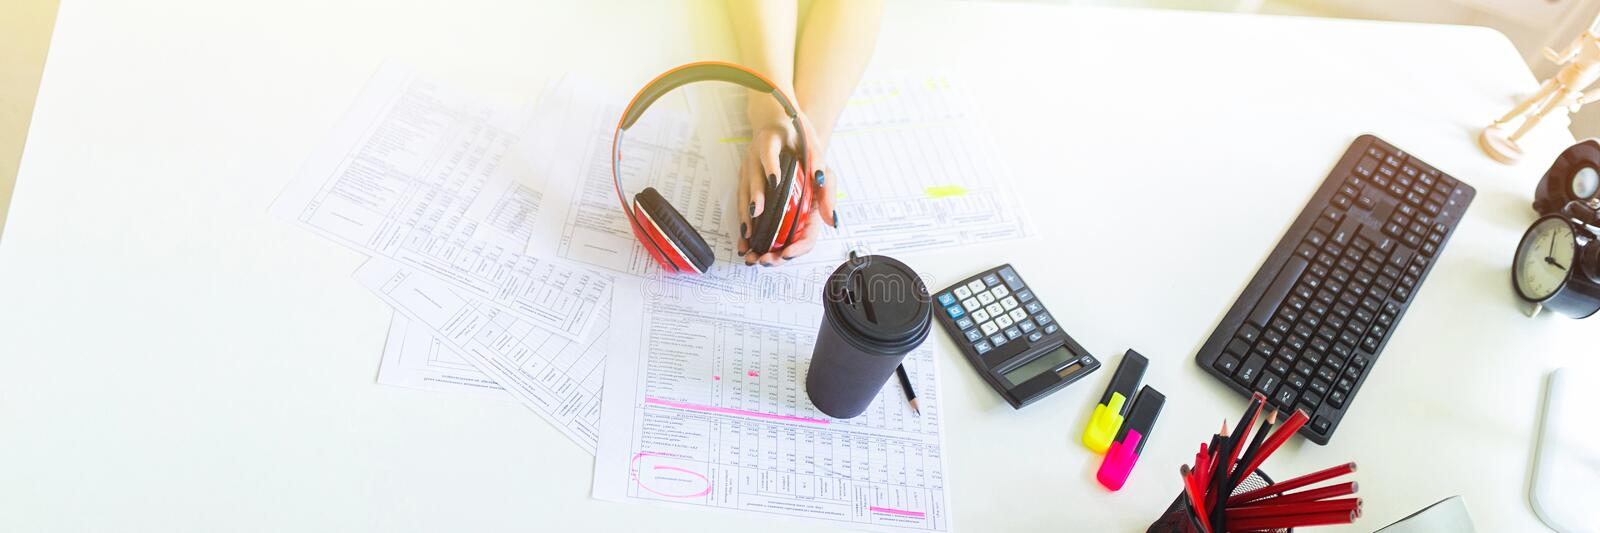 Beautiful young girl with headphones in hands is sitting in the office at the table. royalty free stock photos